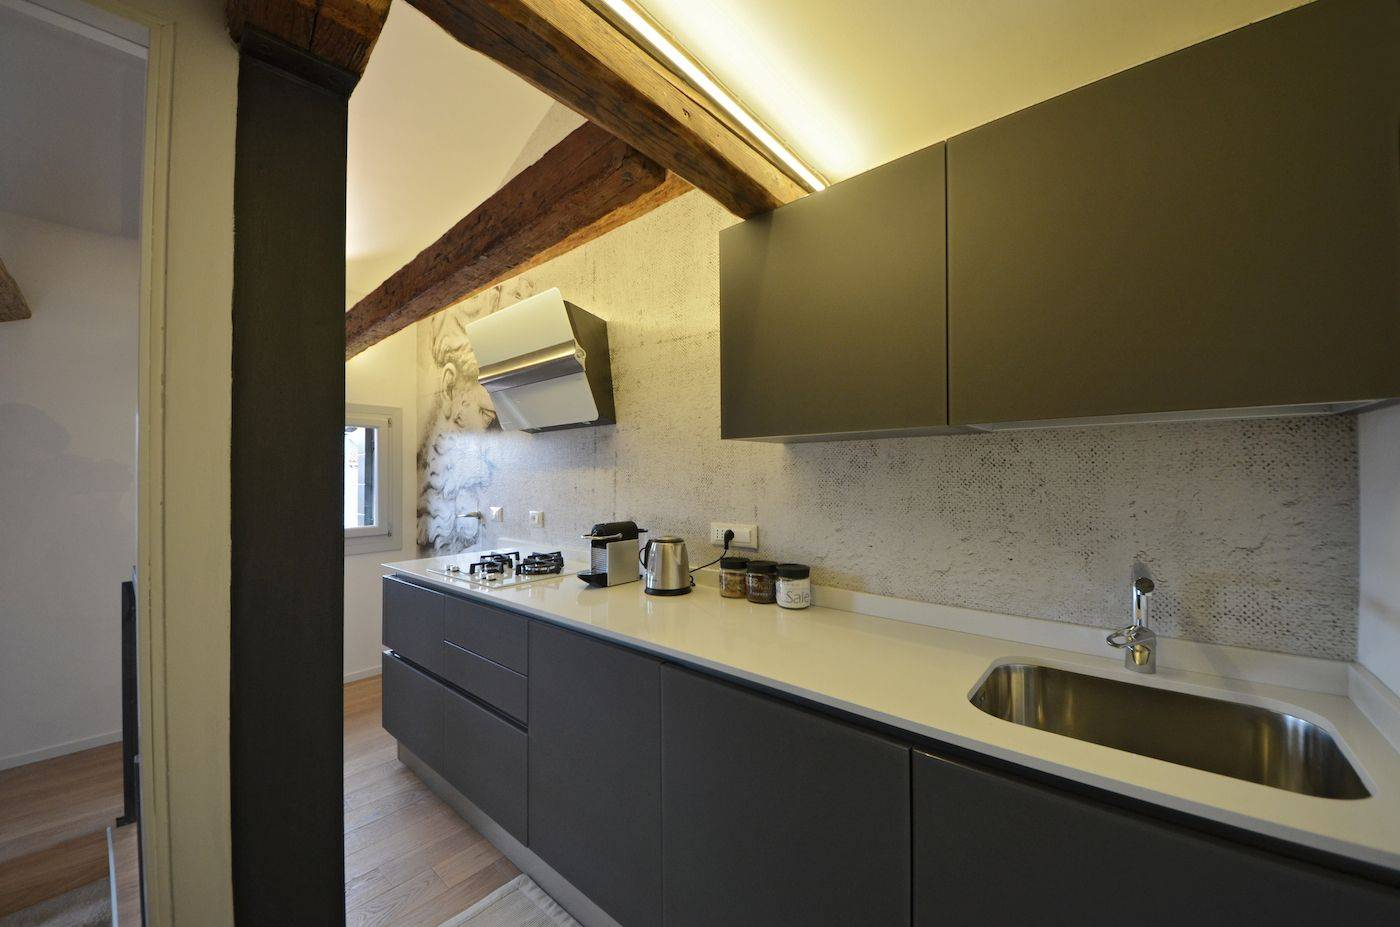 the stylish and well equipped kitchen is really functional